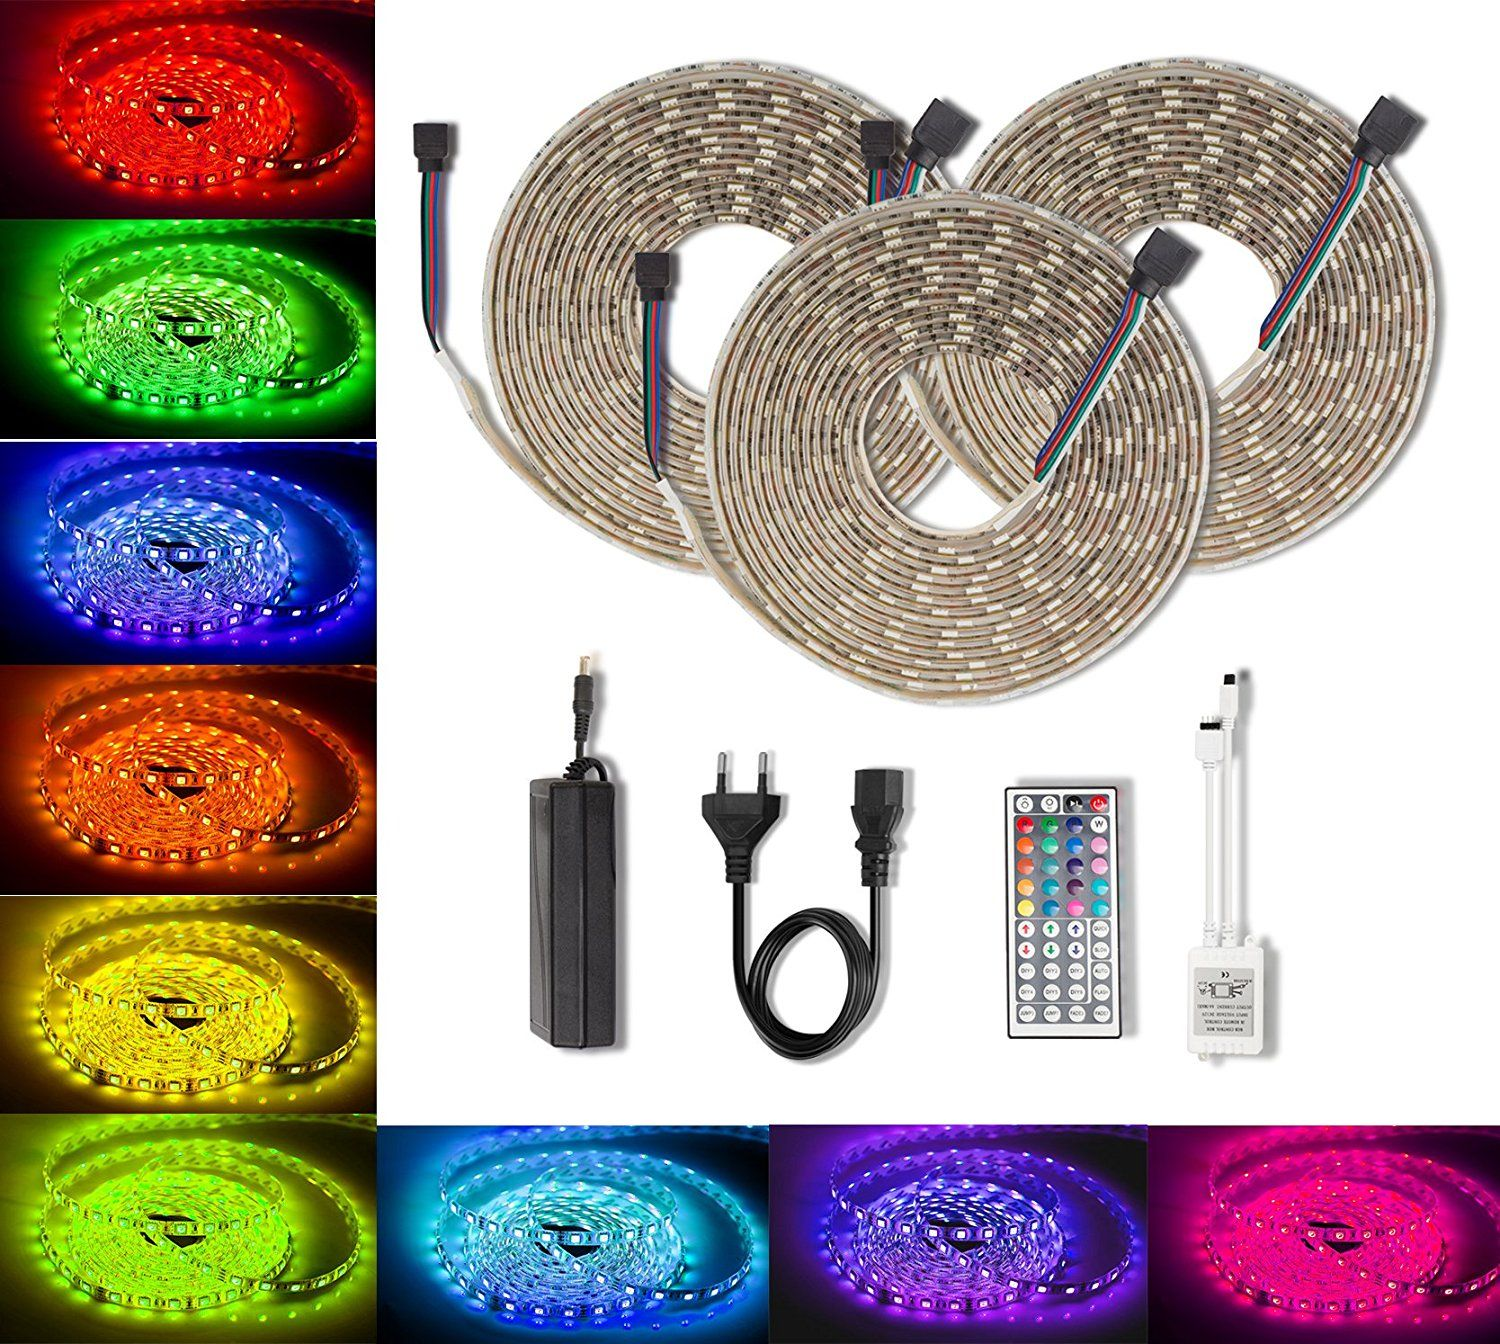 Color Changing Rope Lights Entrancing Quntis Led Strips Light Rgb High Density Dimmable 164Ft 5M Rgb Smd Design Inspiration